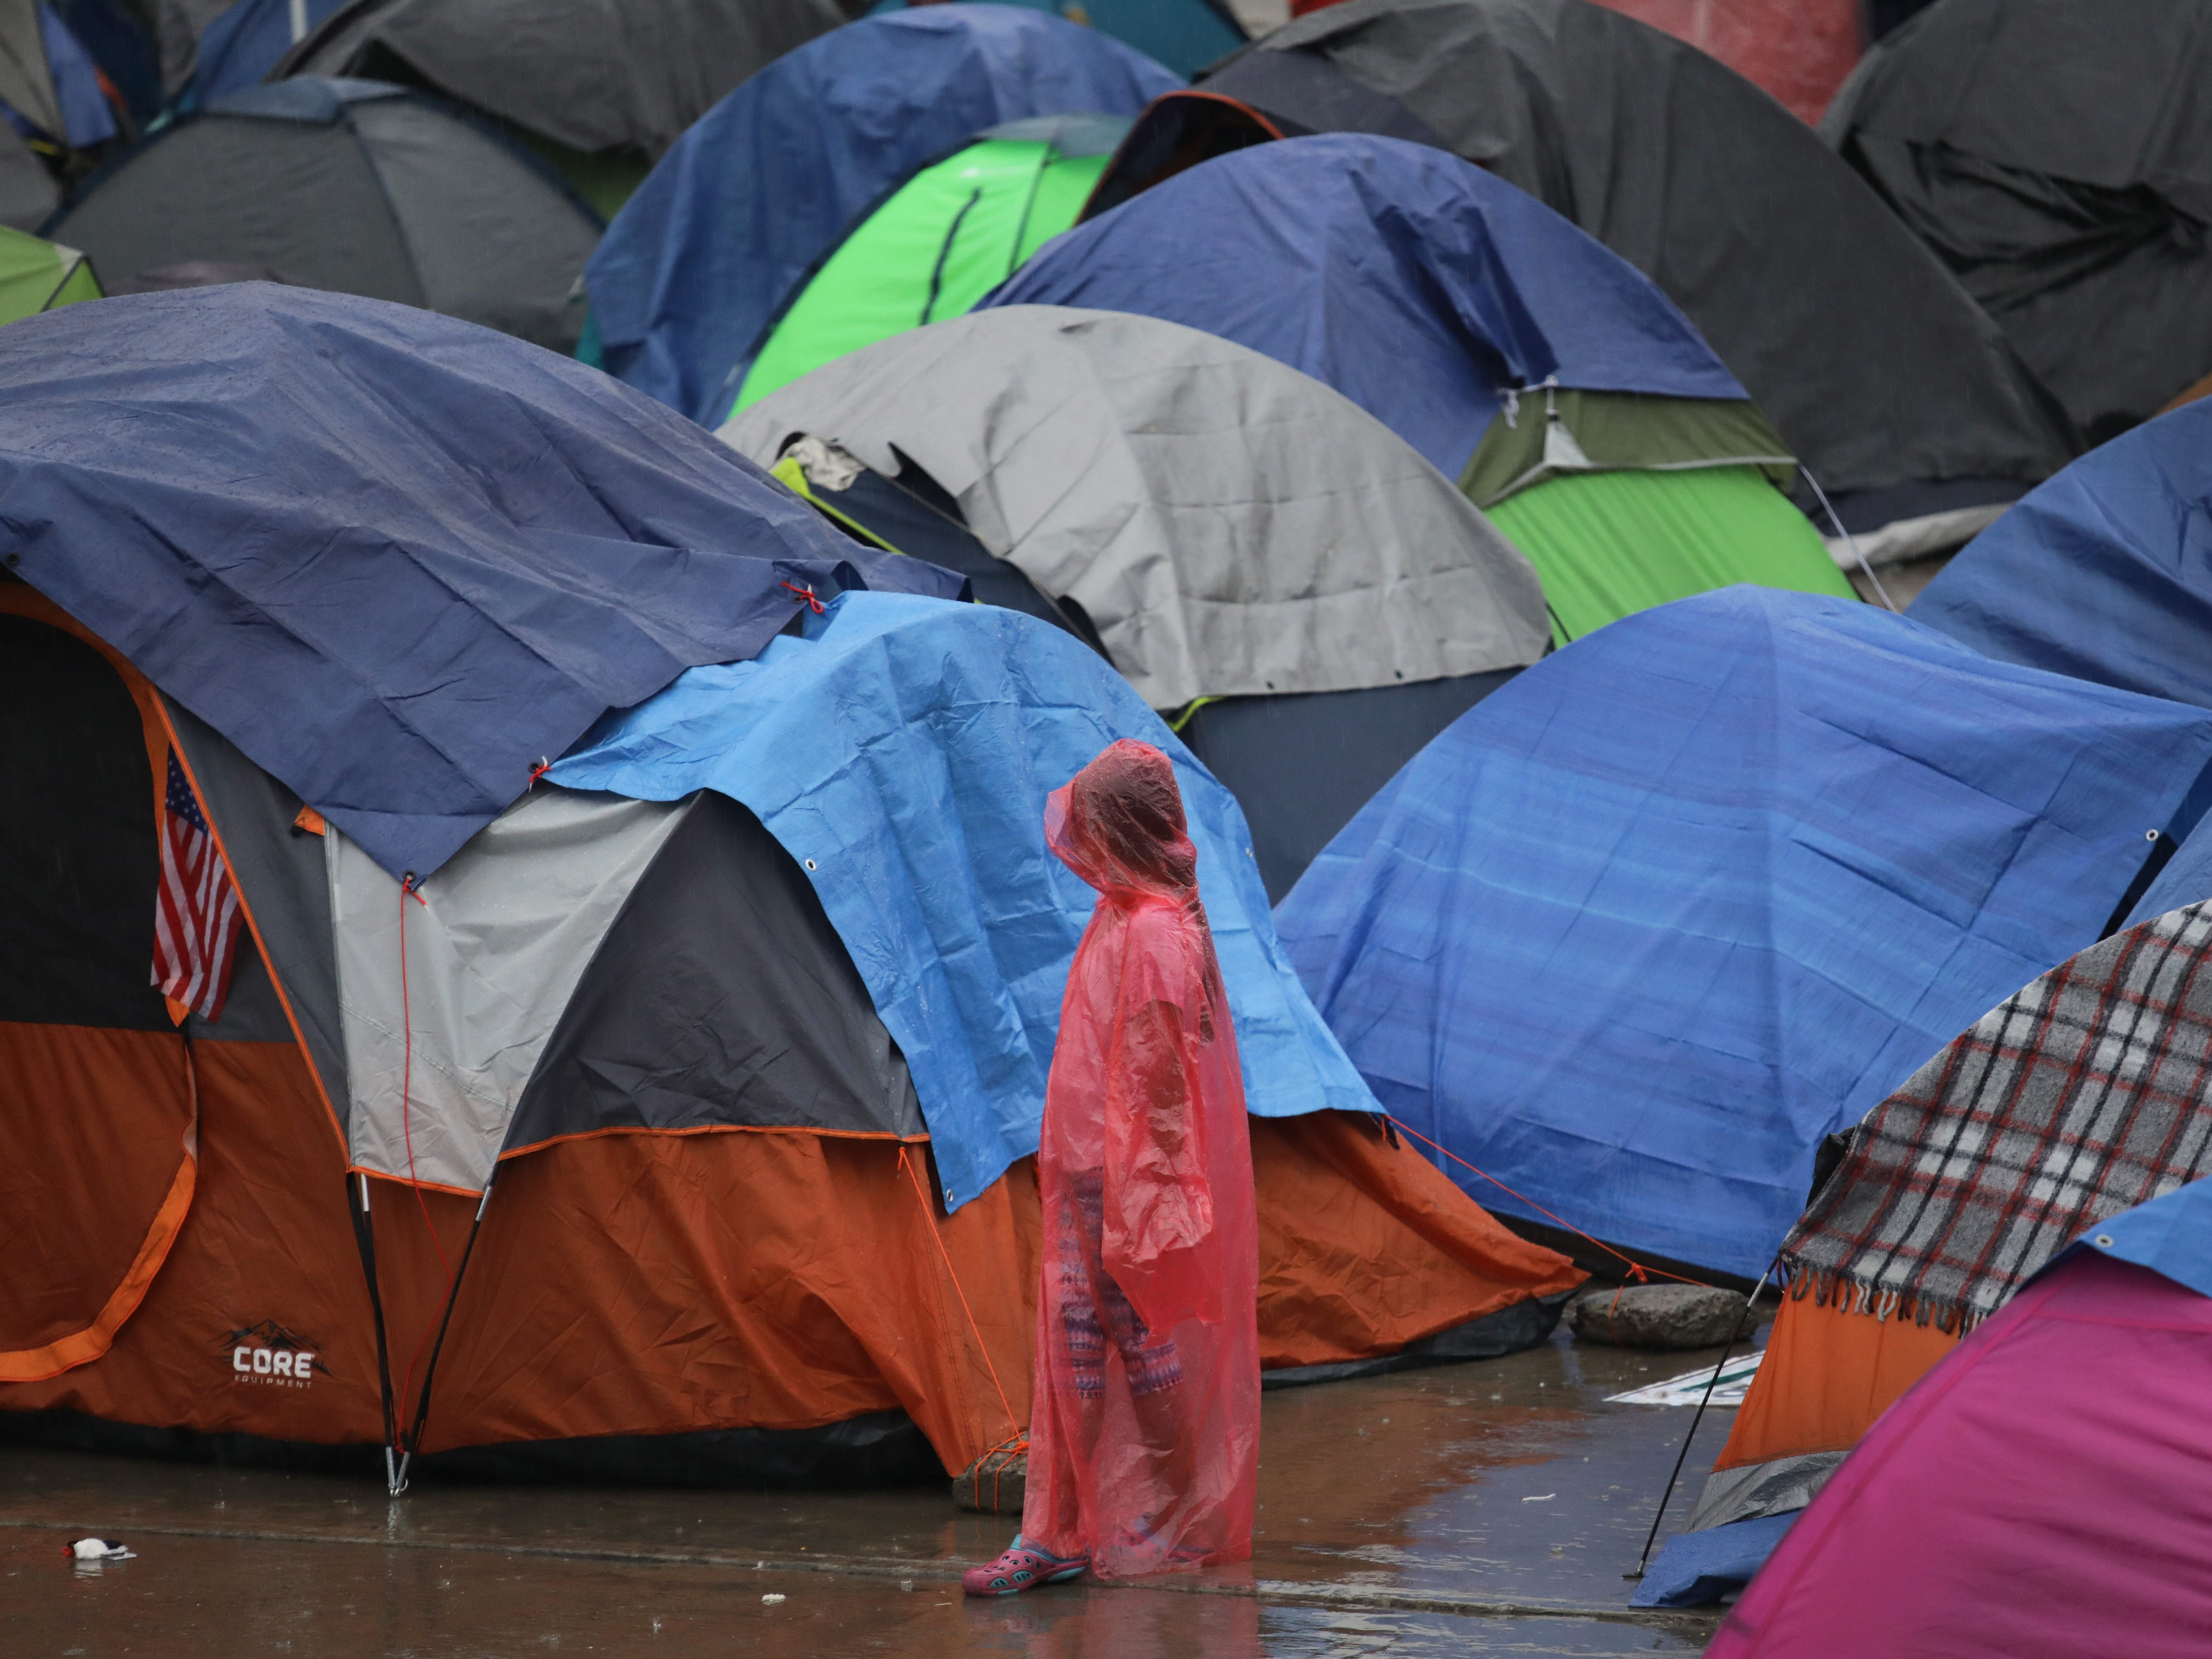 Rain falls on a migrant caravan camp on Dec. 5, 2018 in Tijuana, Mexico. Now near the U.S.-Mexico border after traveling more than six weeks from Central America, thousands of migrants are facing a challenging environment in their goal to enter the United States.